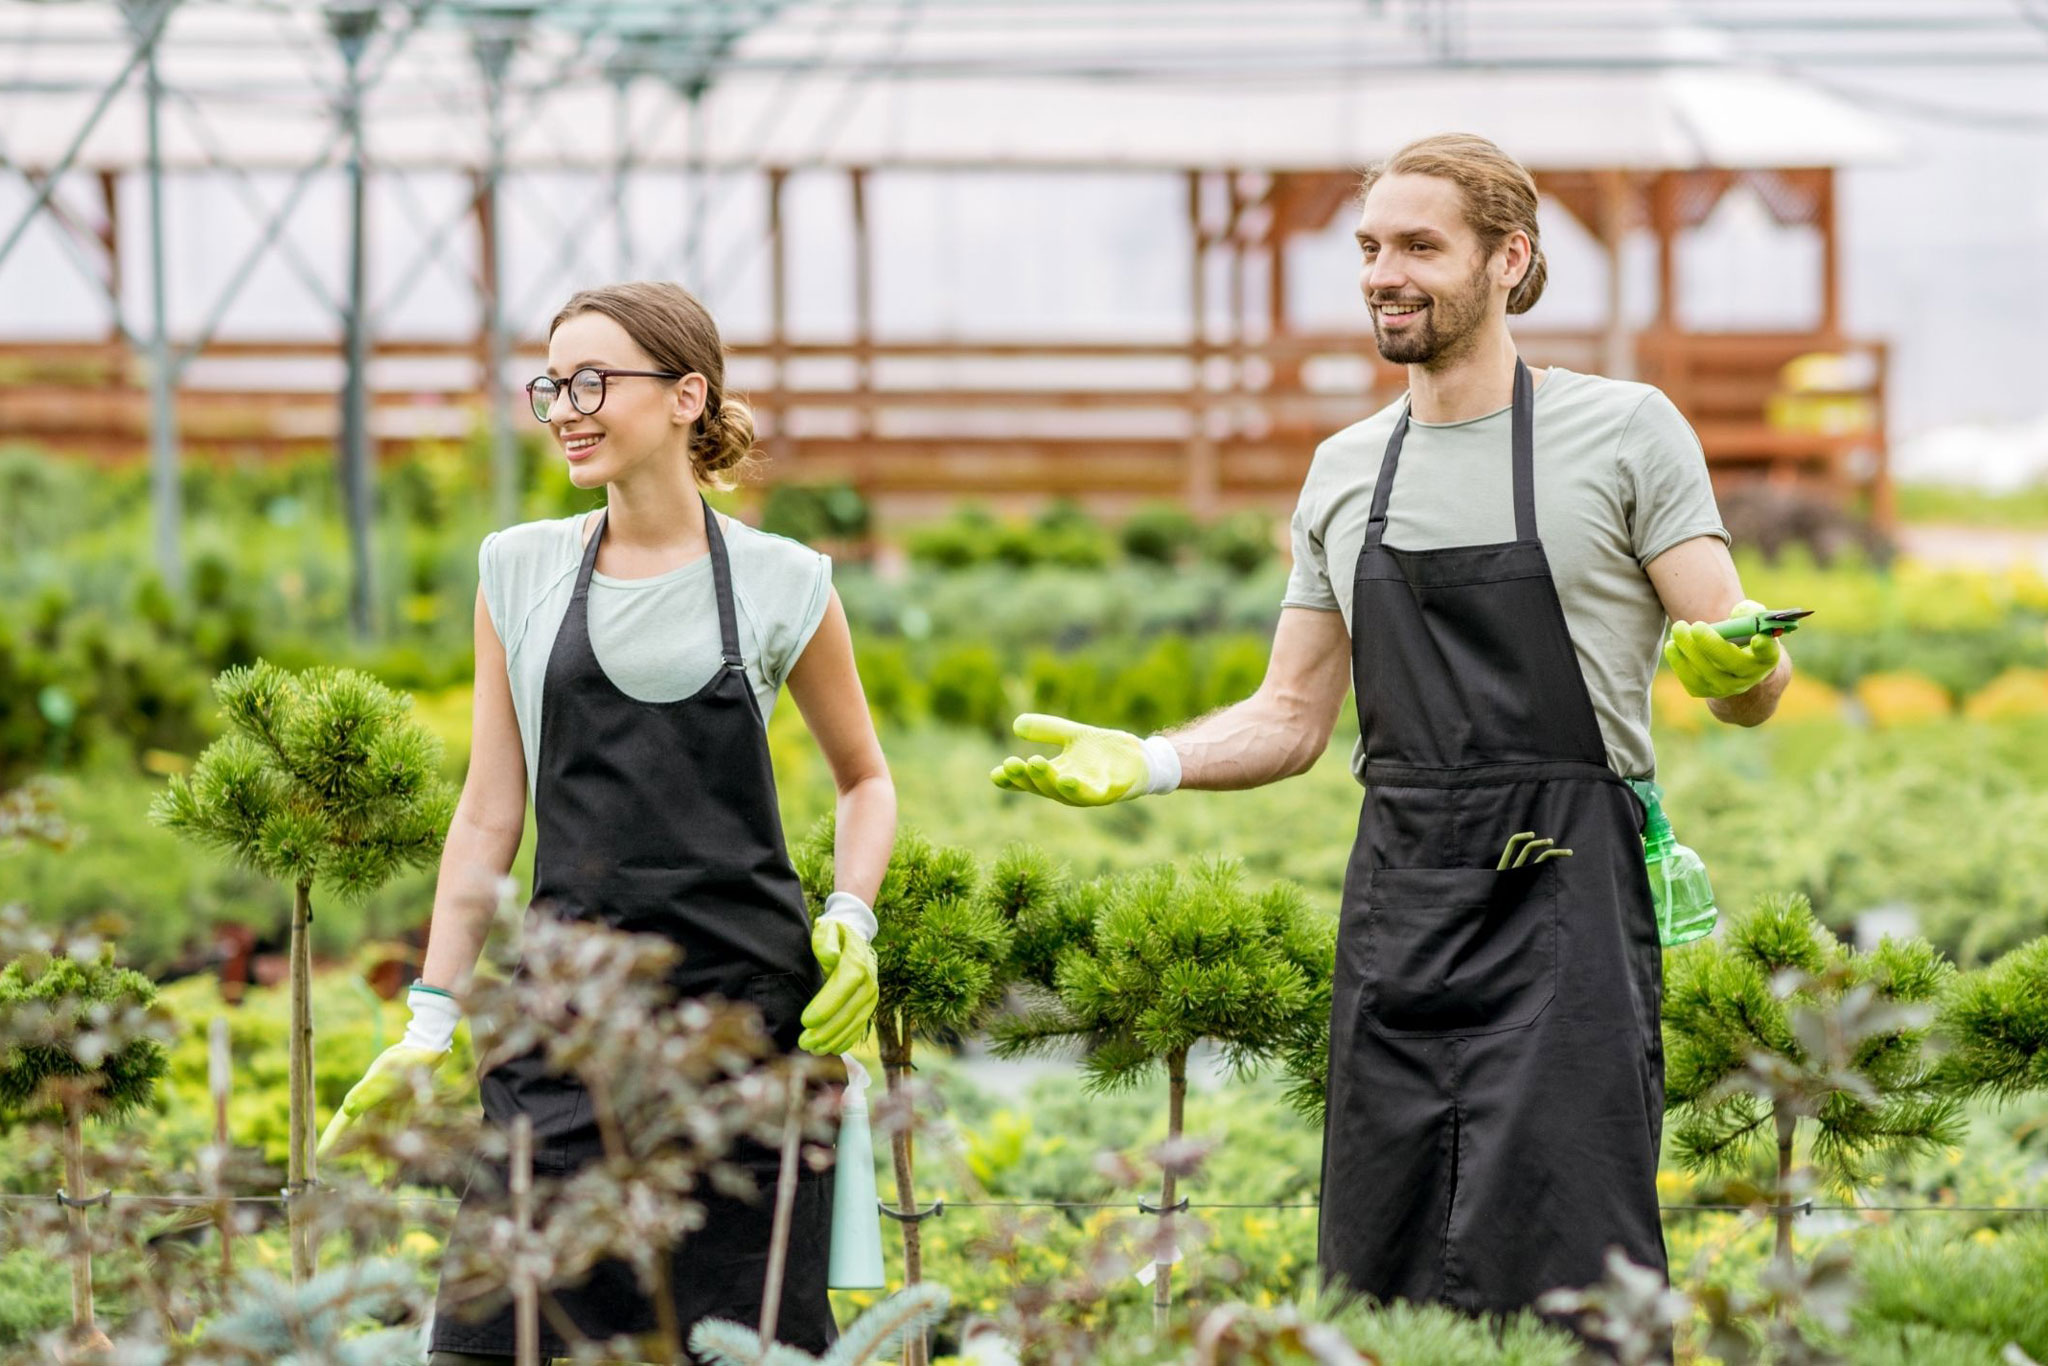 two young people working in a greenhouse surrounded by plants